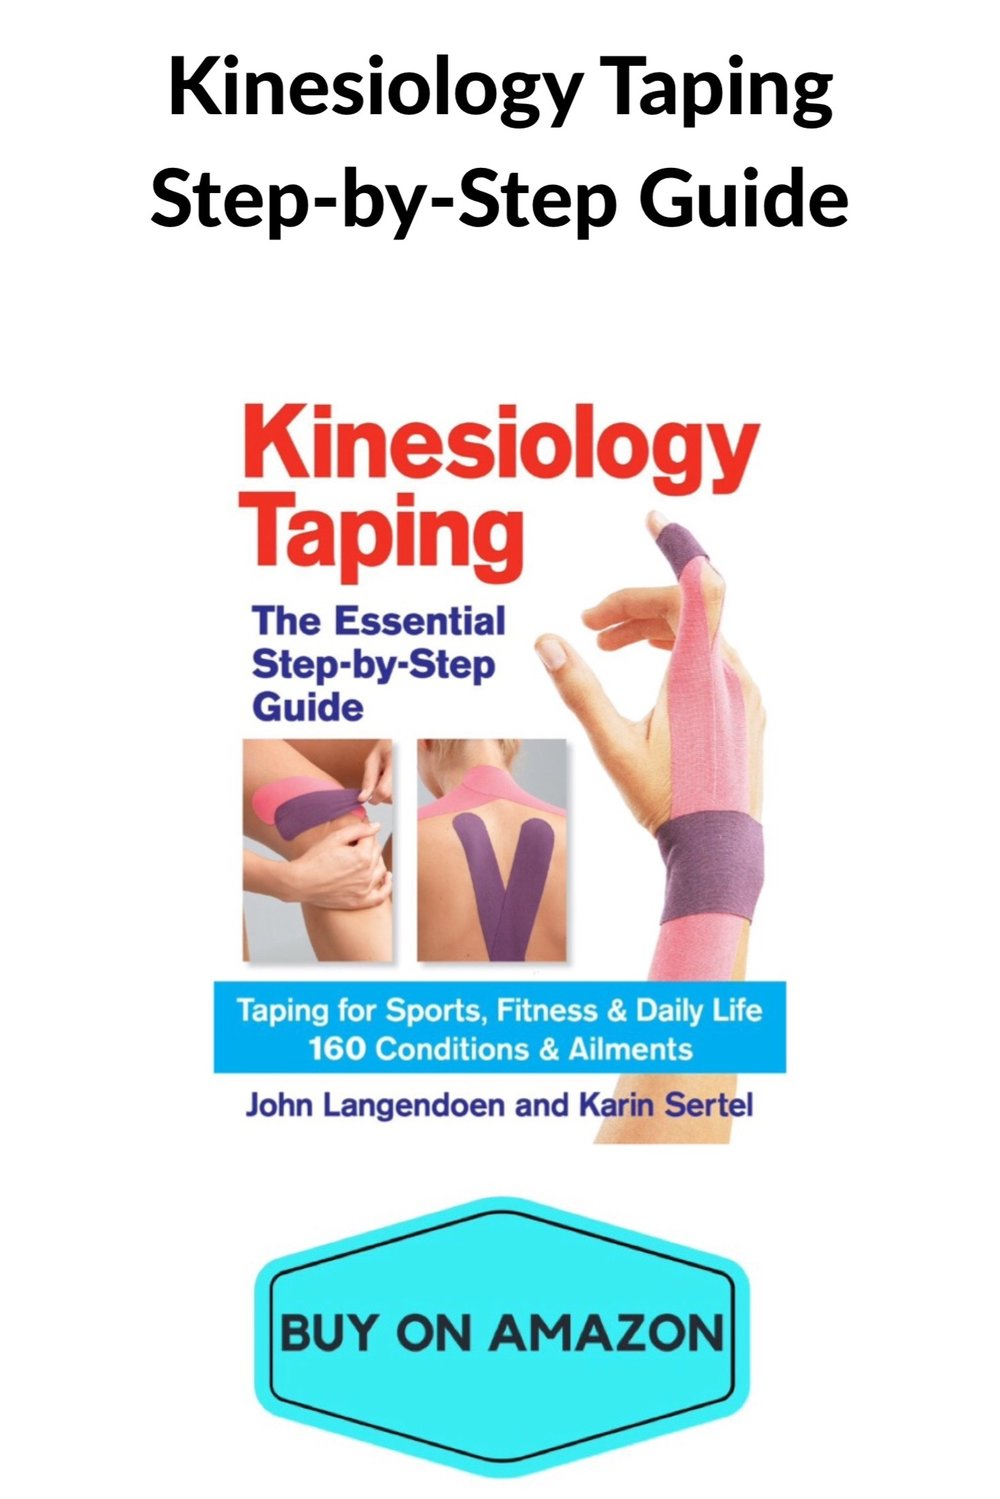 Kinesiology Step-By-Step Guide